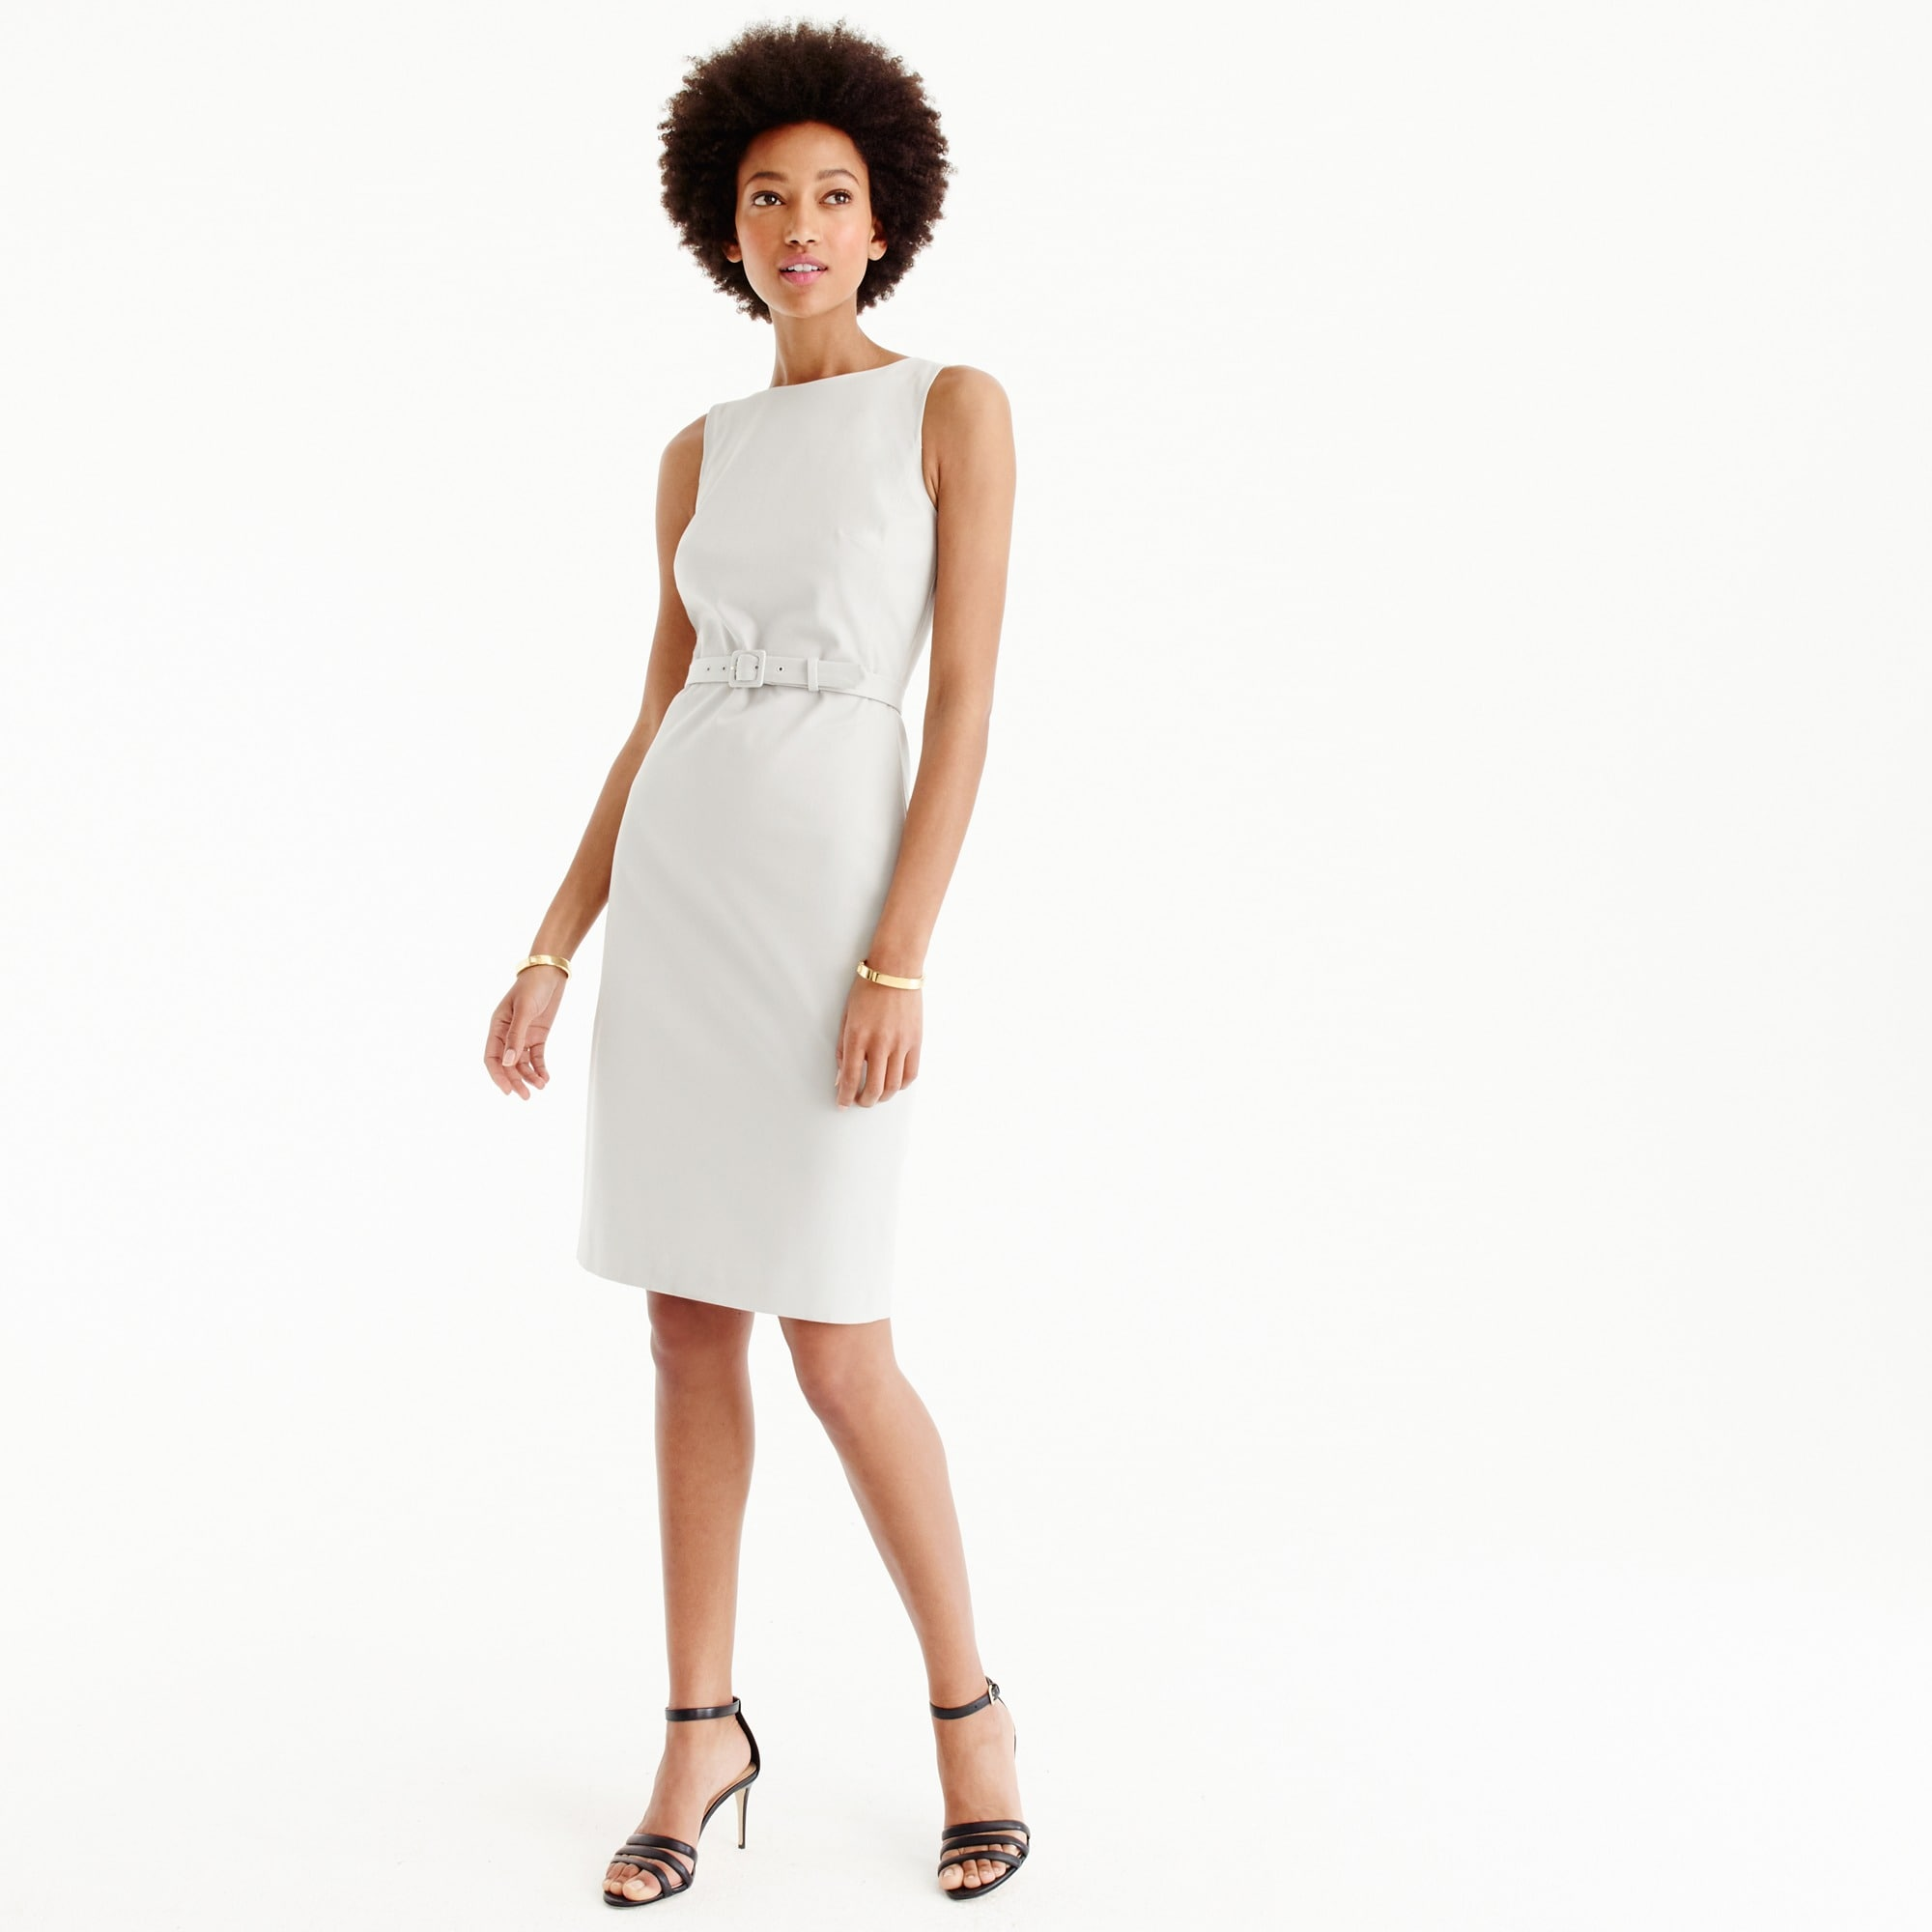 Image 1 for Petite belted sheath dress in two-way stretch cotton